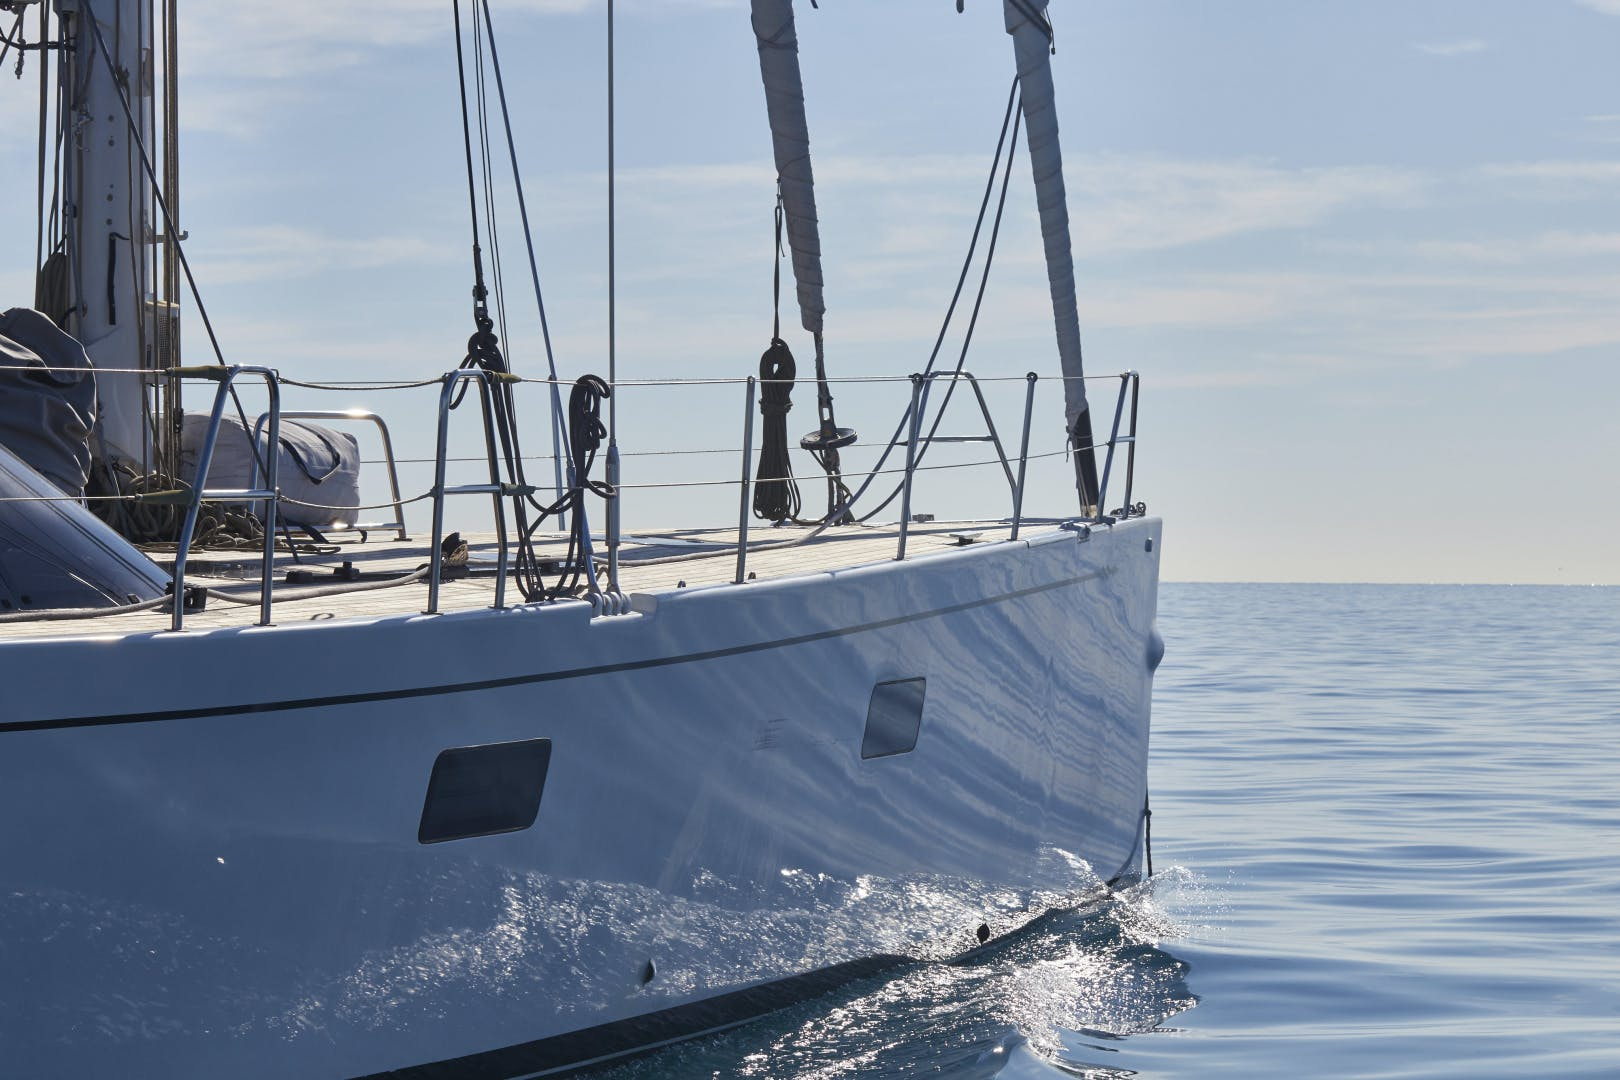 2010 Cantiere Pilot Sarl 65' Tripp 65 Spirit of Altair | Picture 4 of 16